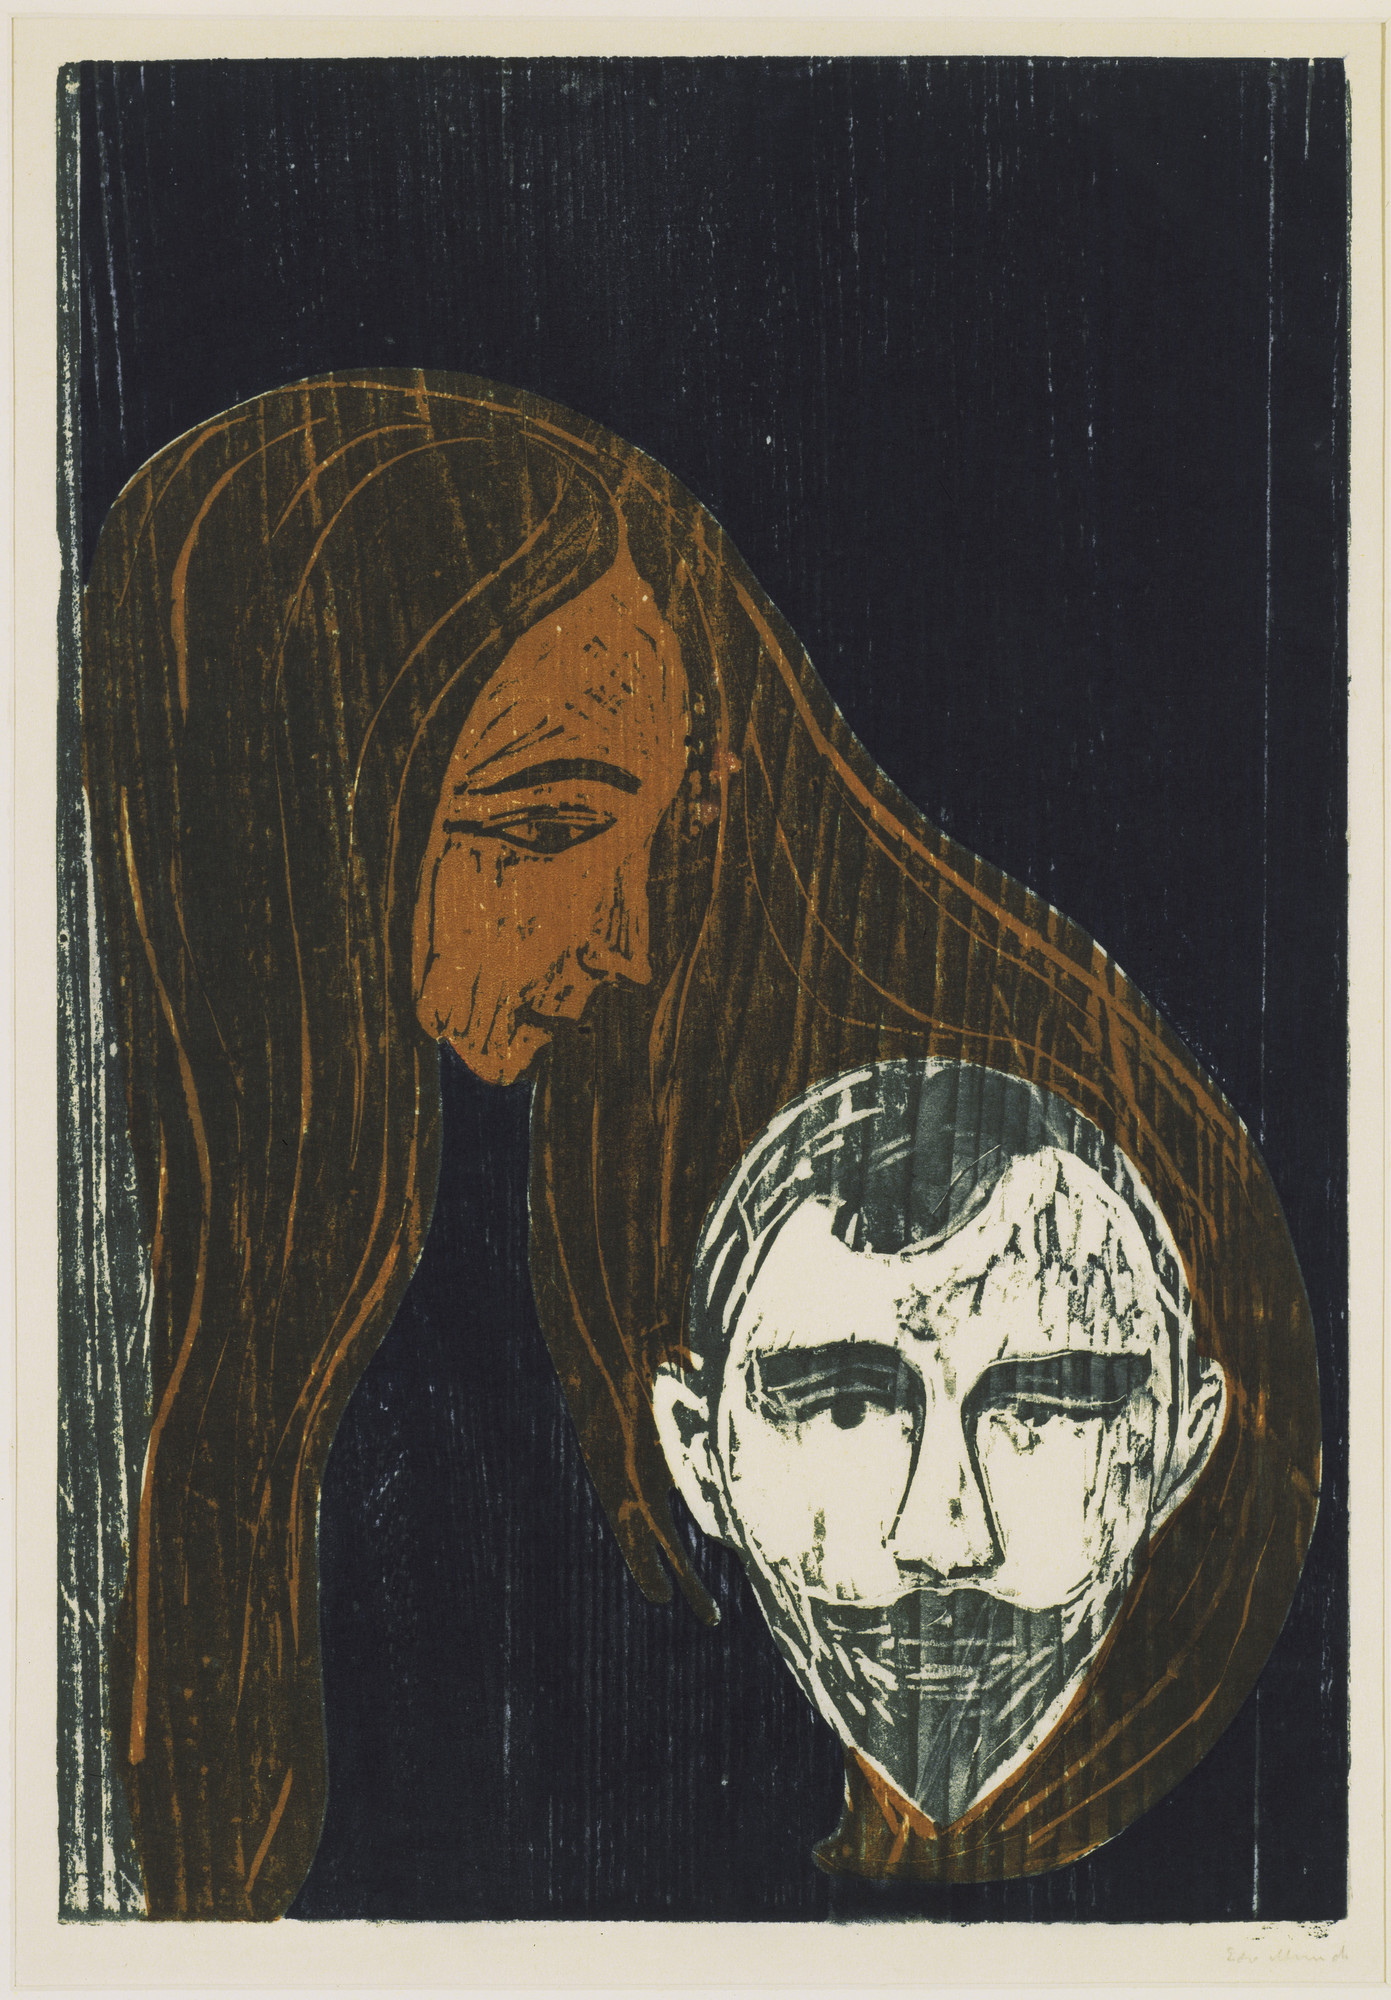 Edvard Munch. Man's Head in Woman's Hair (Mannshode i Kvinnehår). 1896